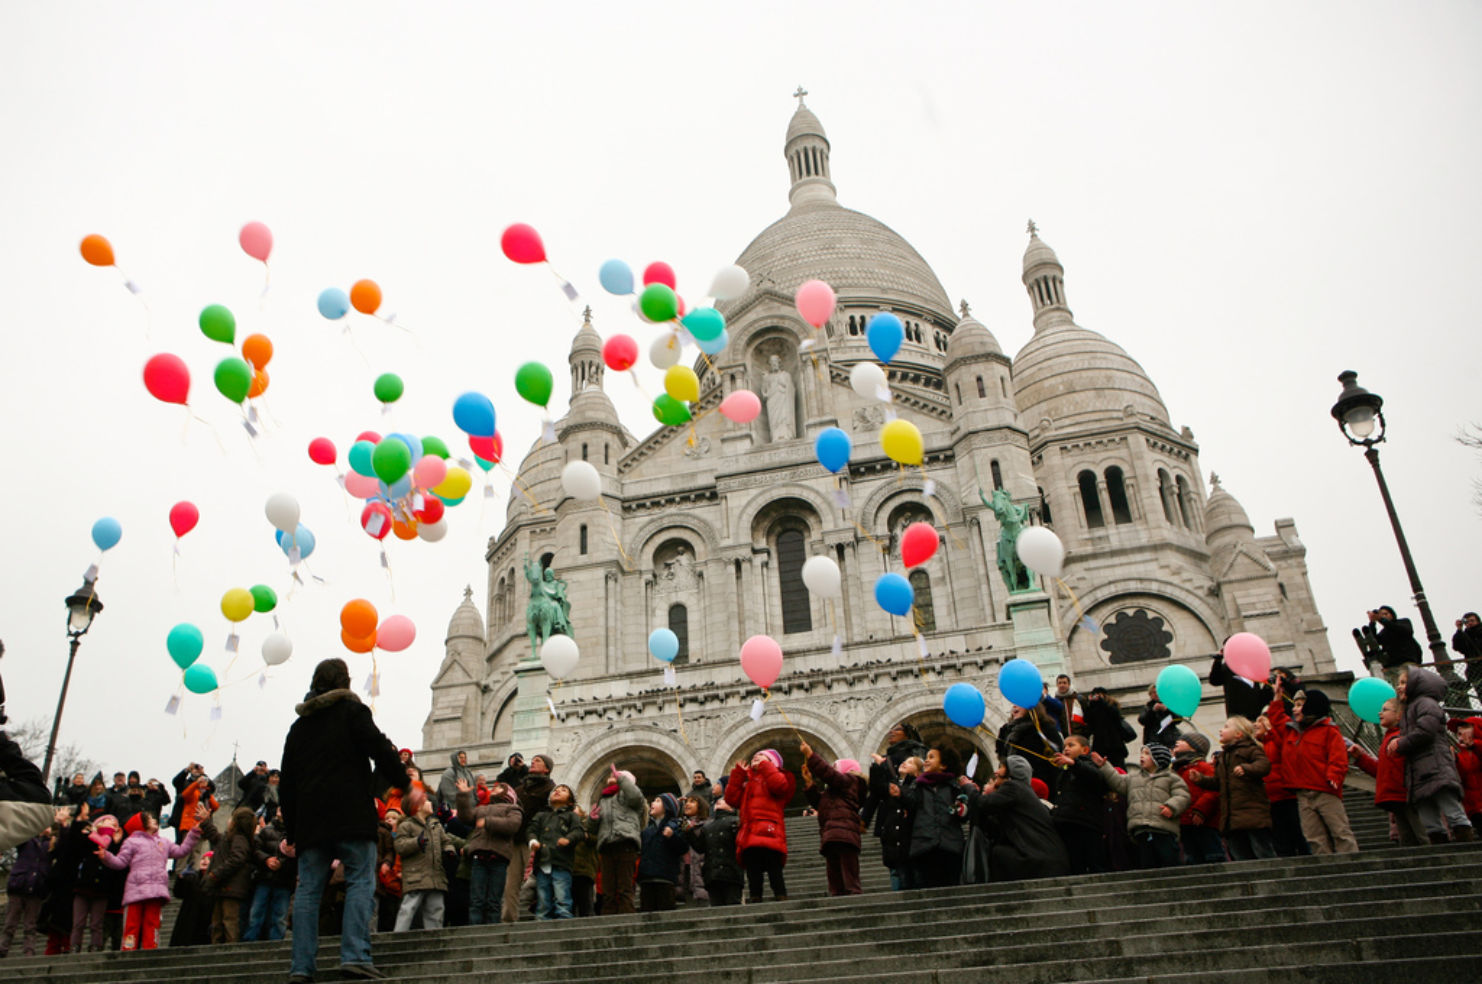 Balloons by the Sacre Coeur church